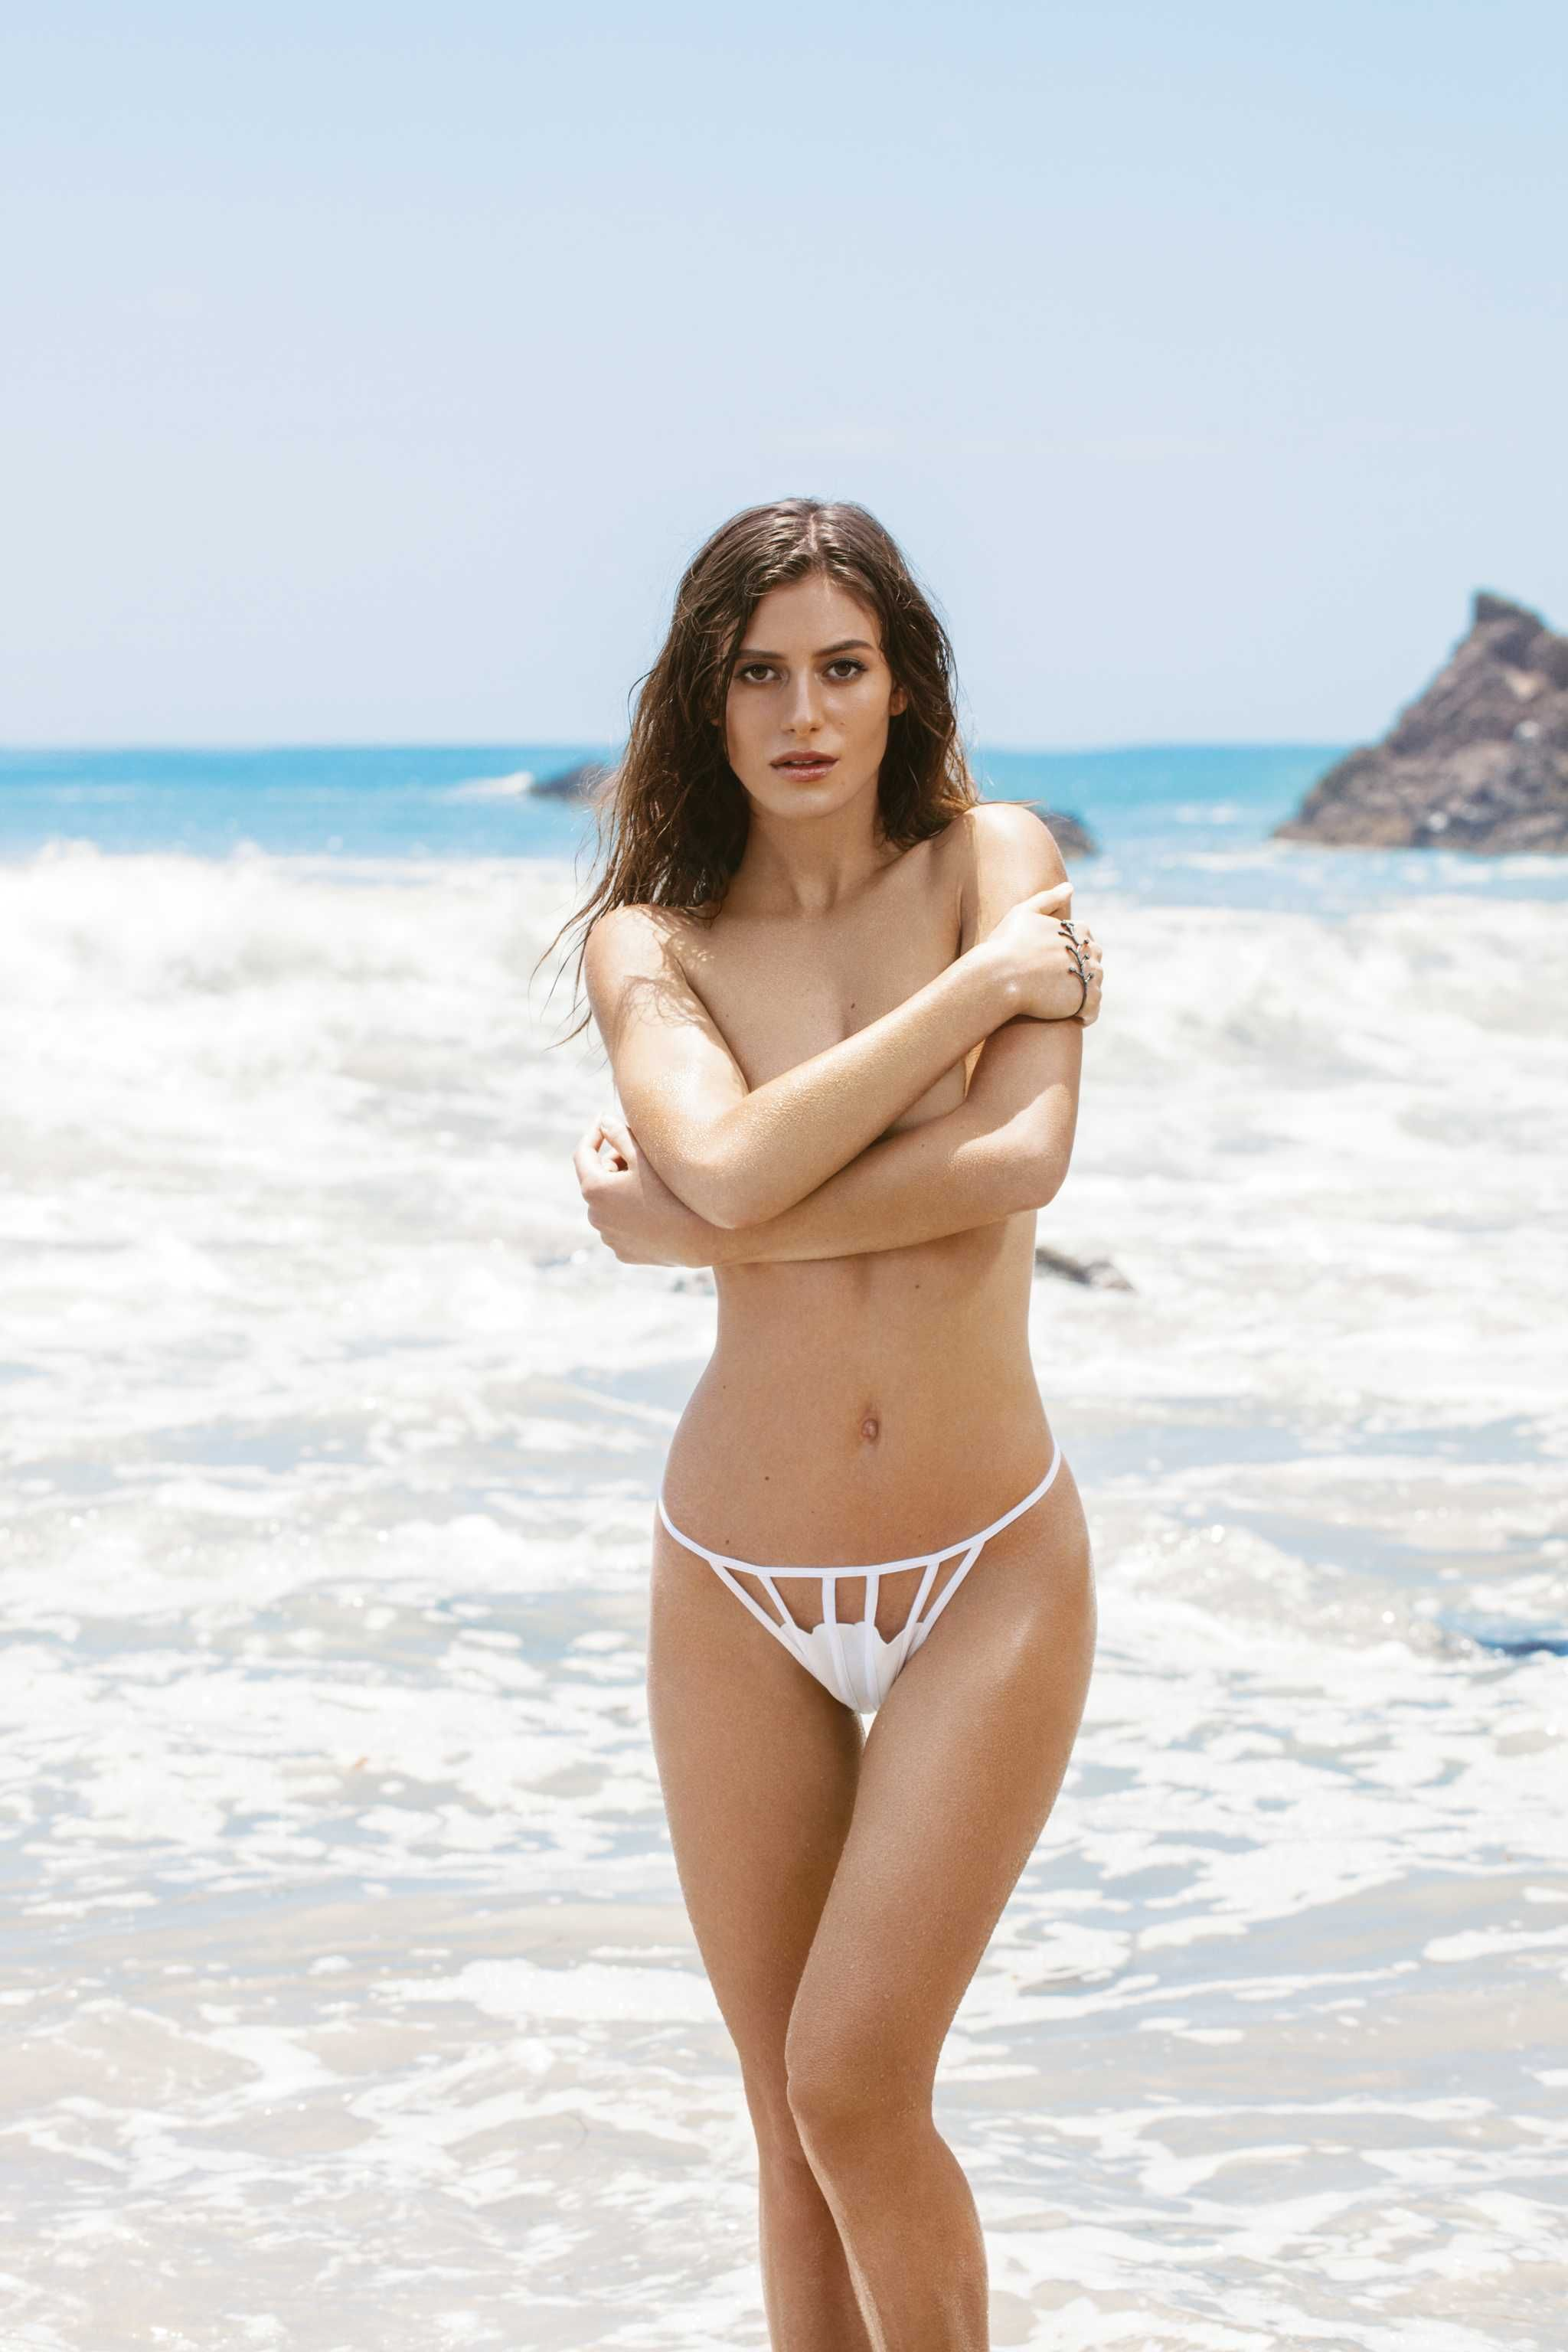 Ass Alejandra Guilmant naked (55 photos), Topless, Sideboobs, Twitter, braless 2015